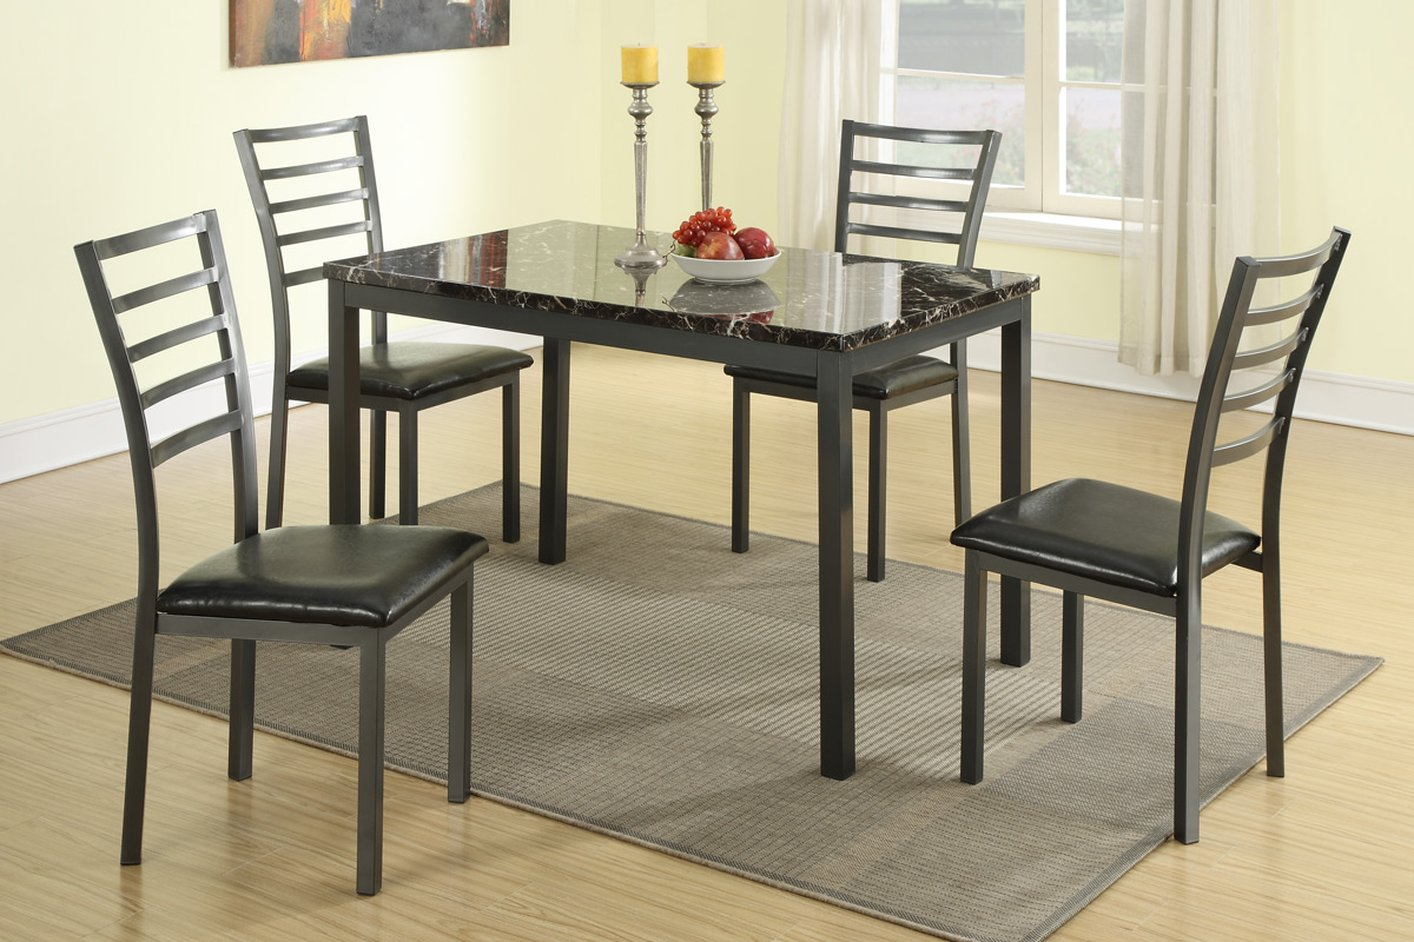 Black Leather Dining Table and Chair Set & Black Leather Dining Table and Chair Set - Steal-A-Sofa Furniture ...